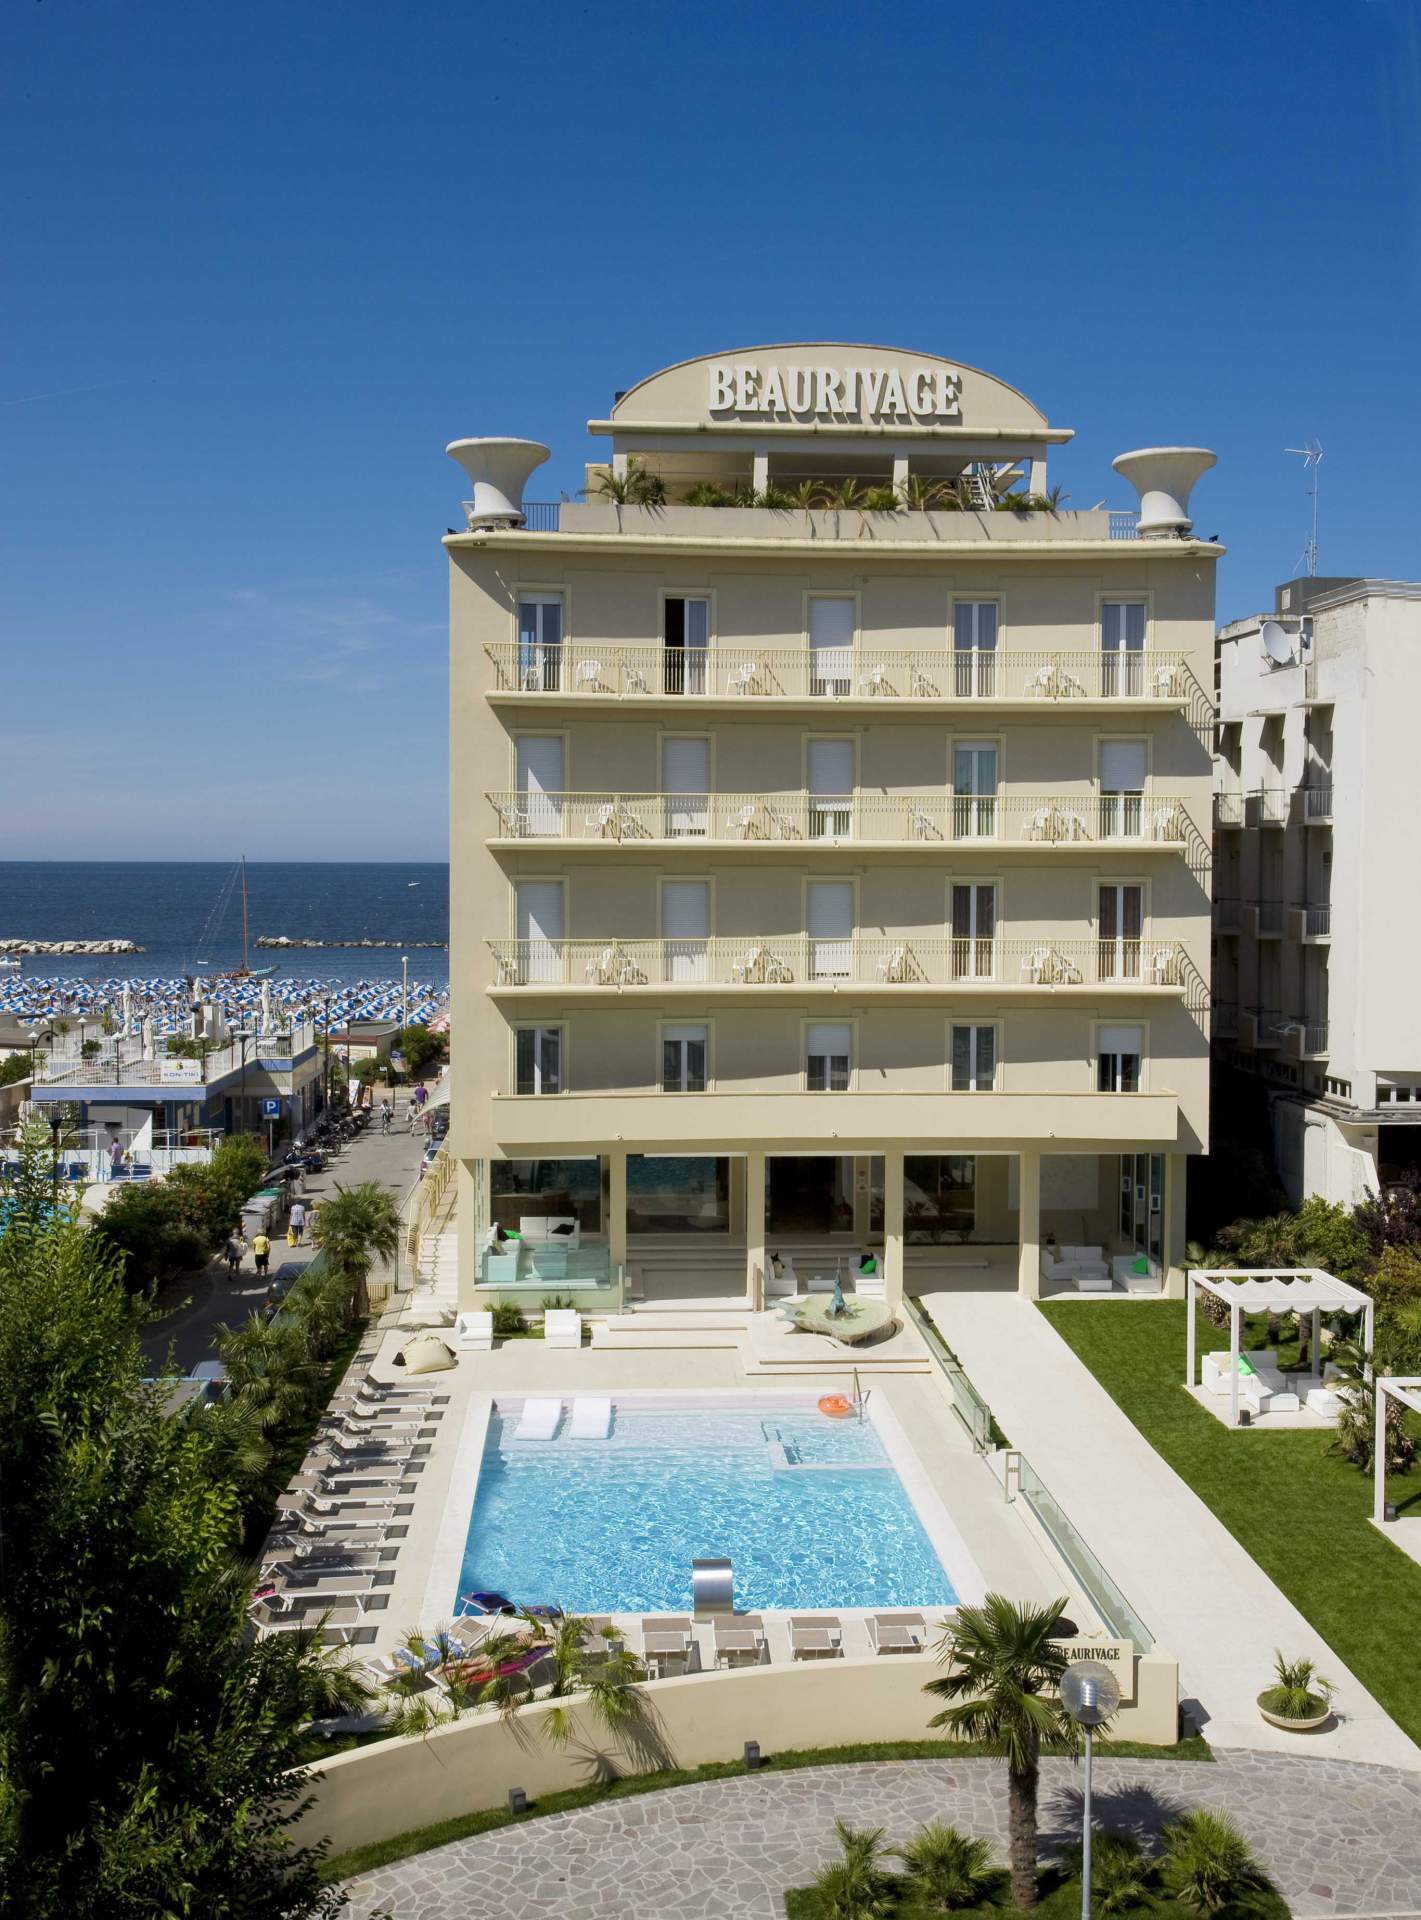 Cattolica - Hotel Beaurivage